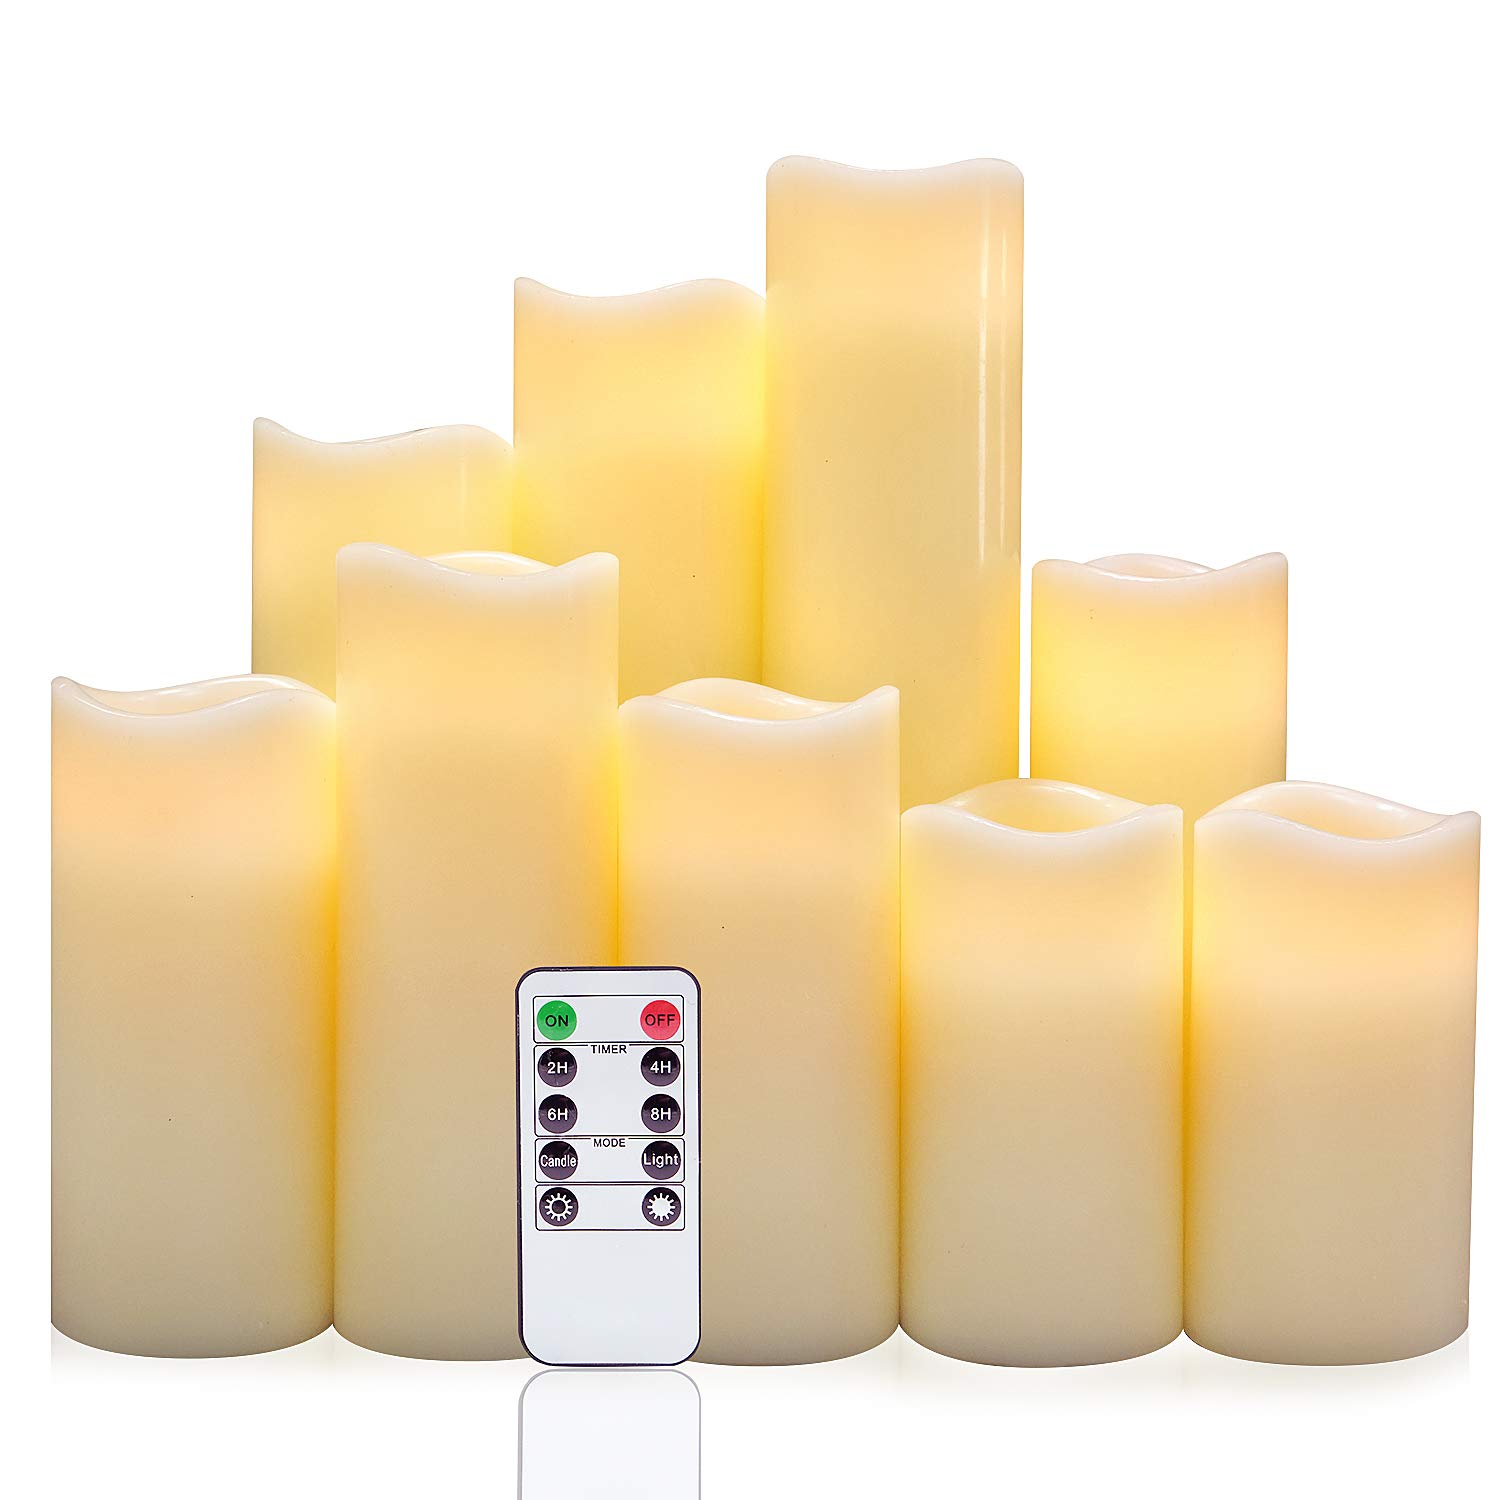 Eldnacele Flameless Flickering Pillar Candles LED Battery Operted Candles with Remote and Timer Set of 9 H 4 5 6 7 8 9 xD 2.2 Real Wax for Christmas Decoration Ivory